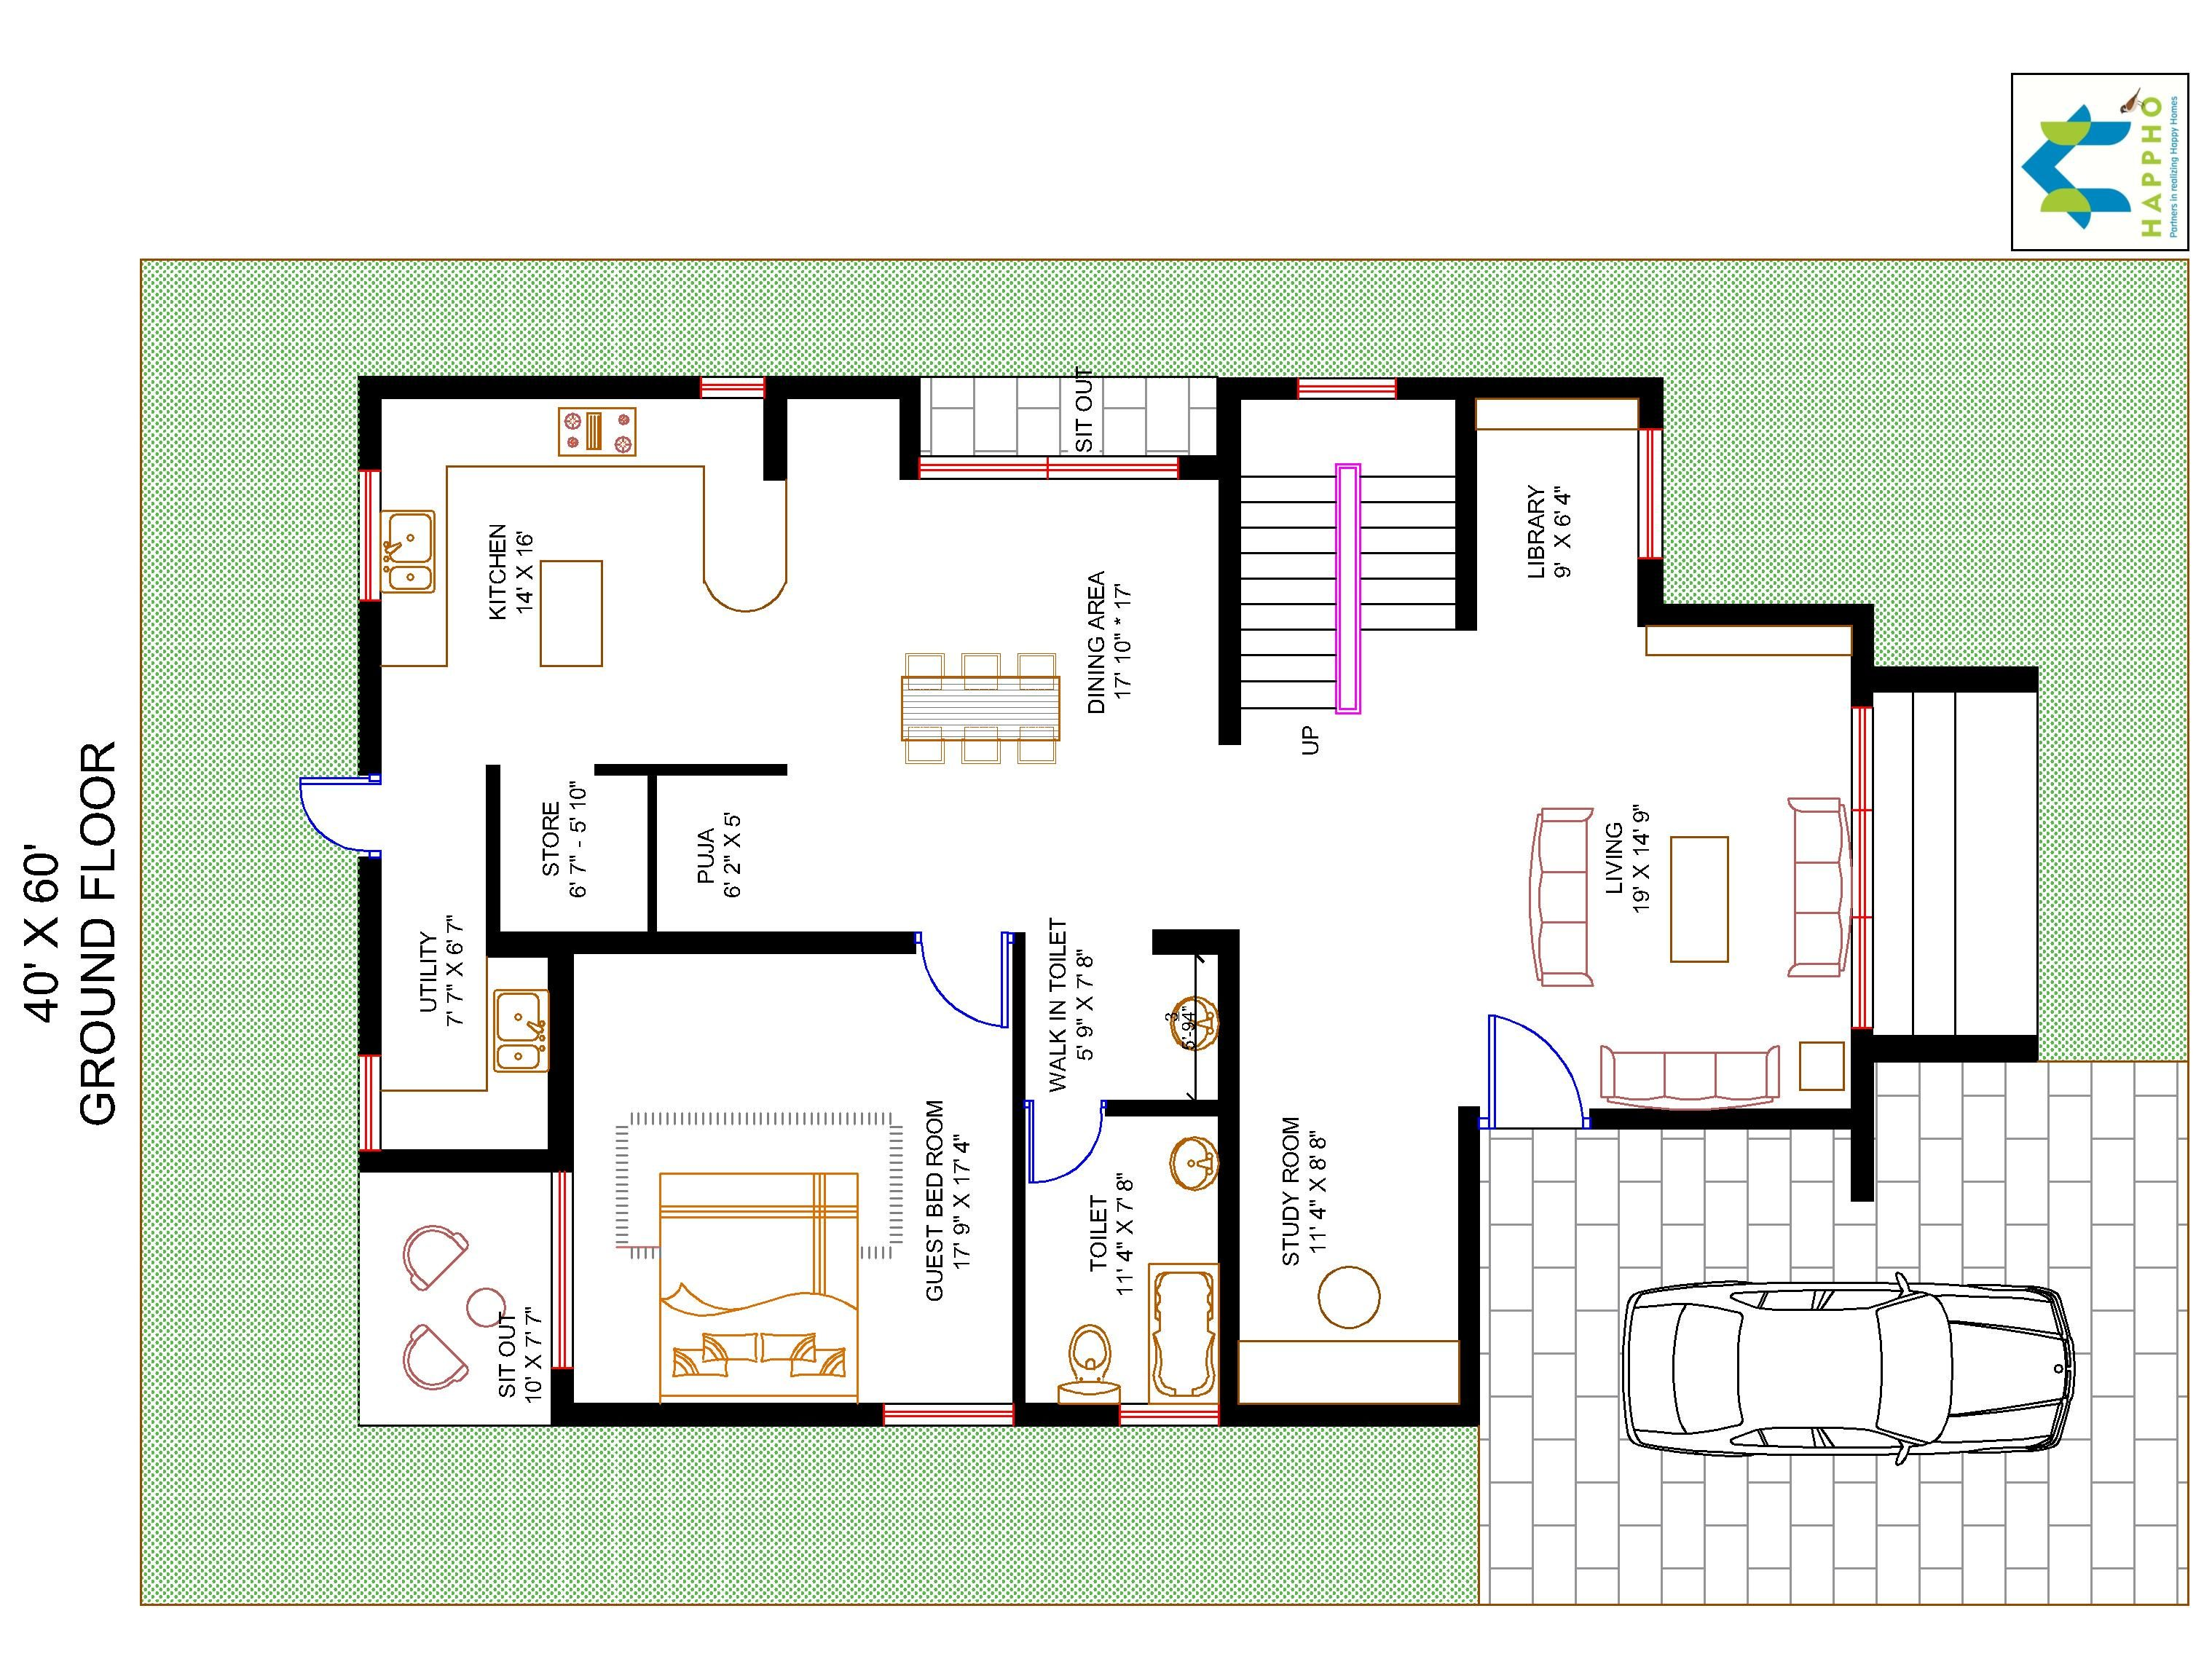 3 bhk floor plan for 40 x 60 plot 2400 square feet 266 for Plan for 40 x 60 plot